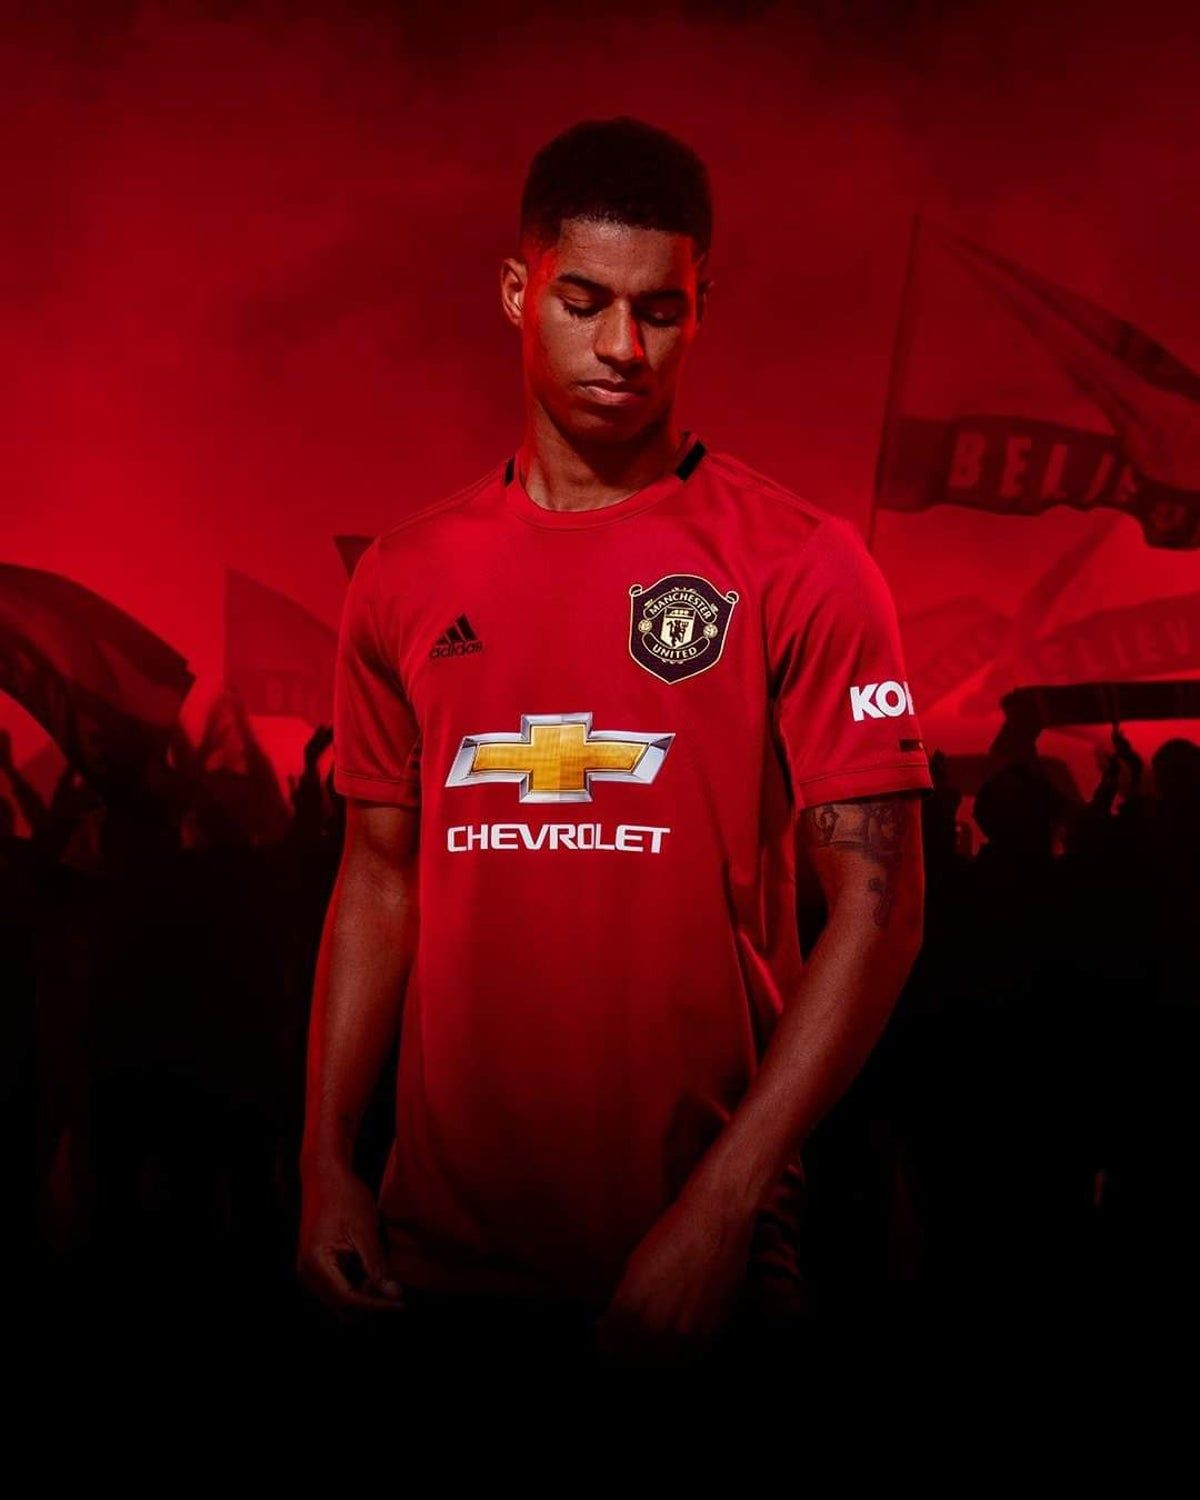 Dls Data Profile Dat For Man Manchester United 2019 2020 In 2020 Manchester United Manchester The Unit